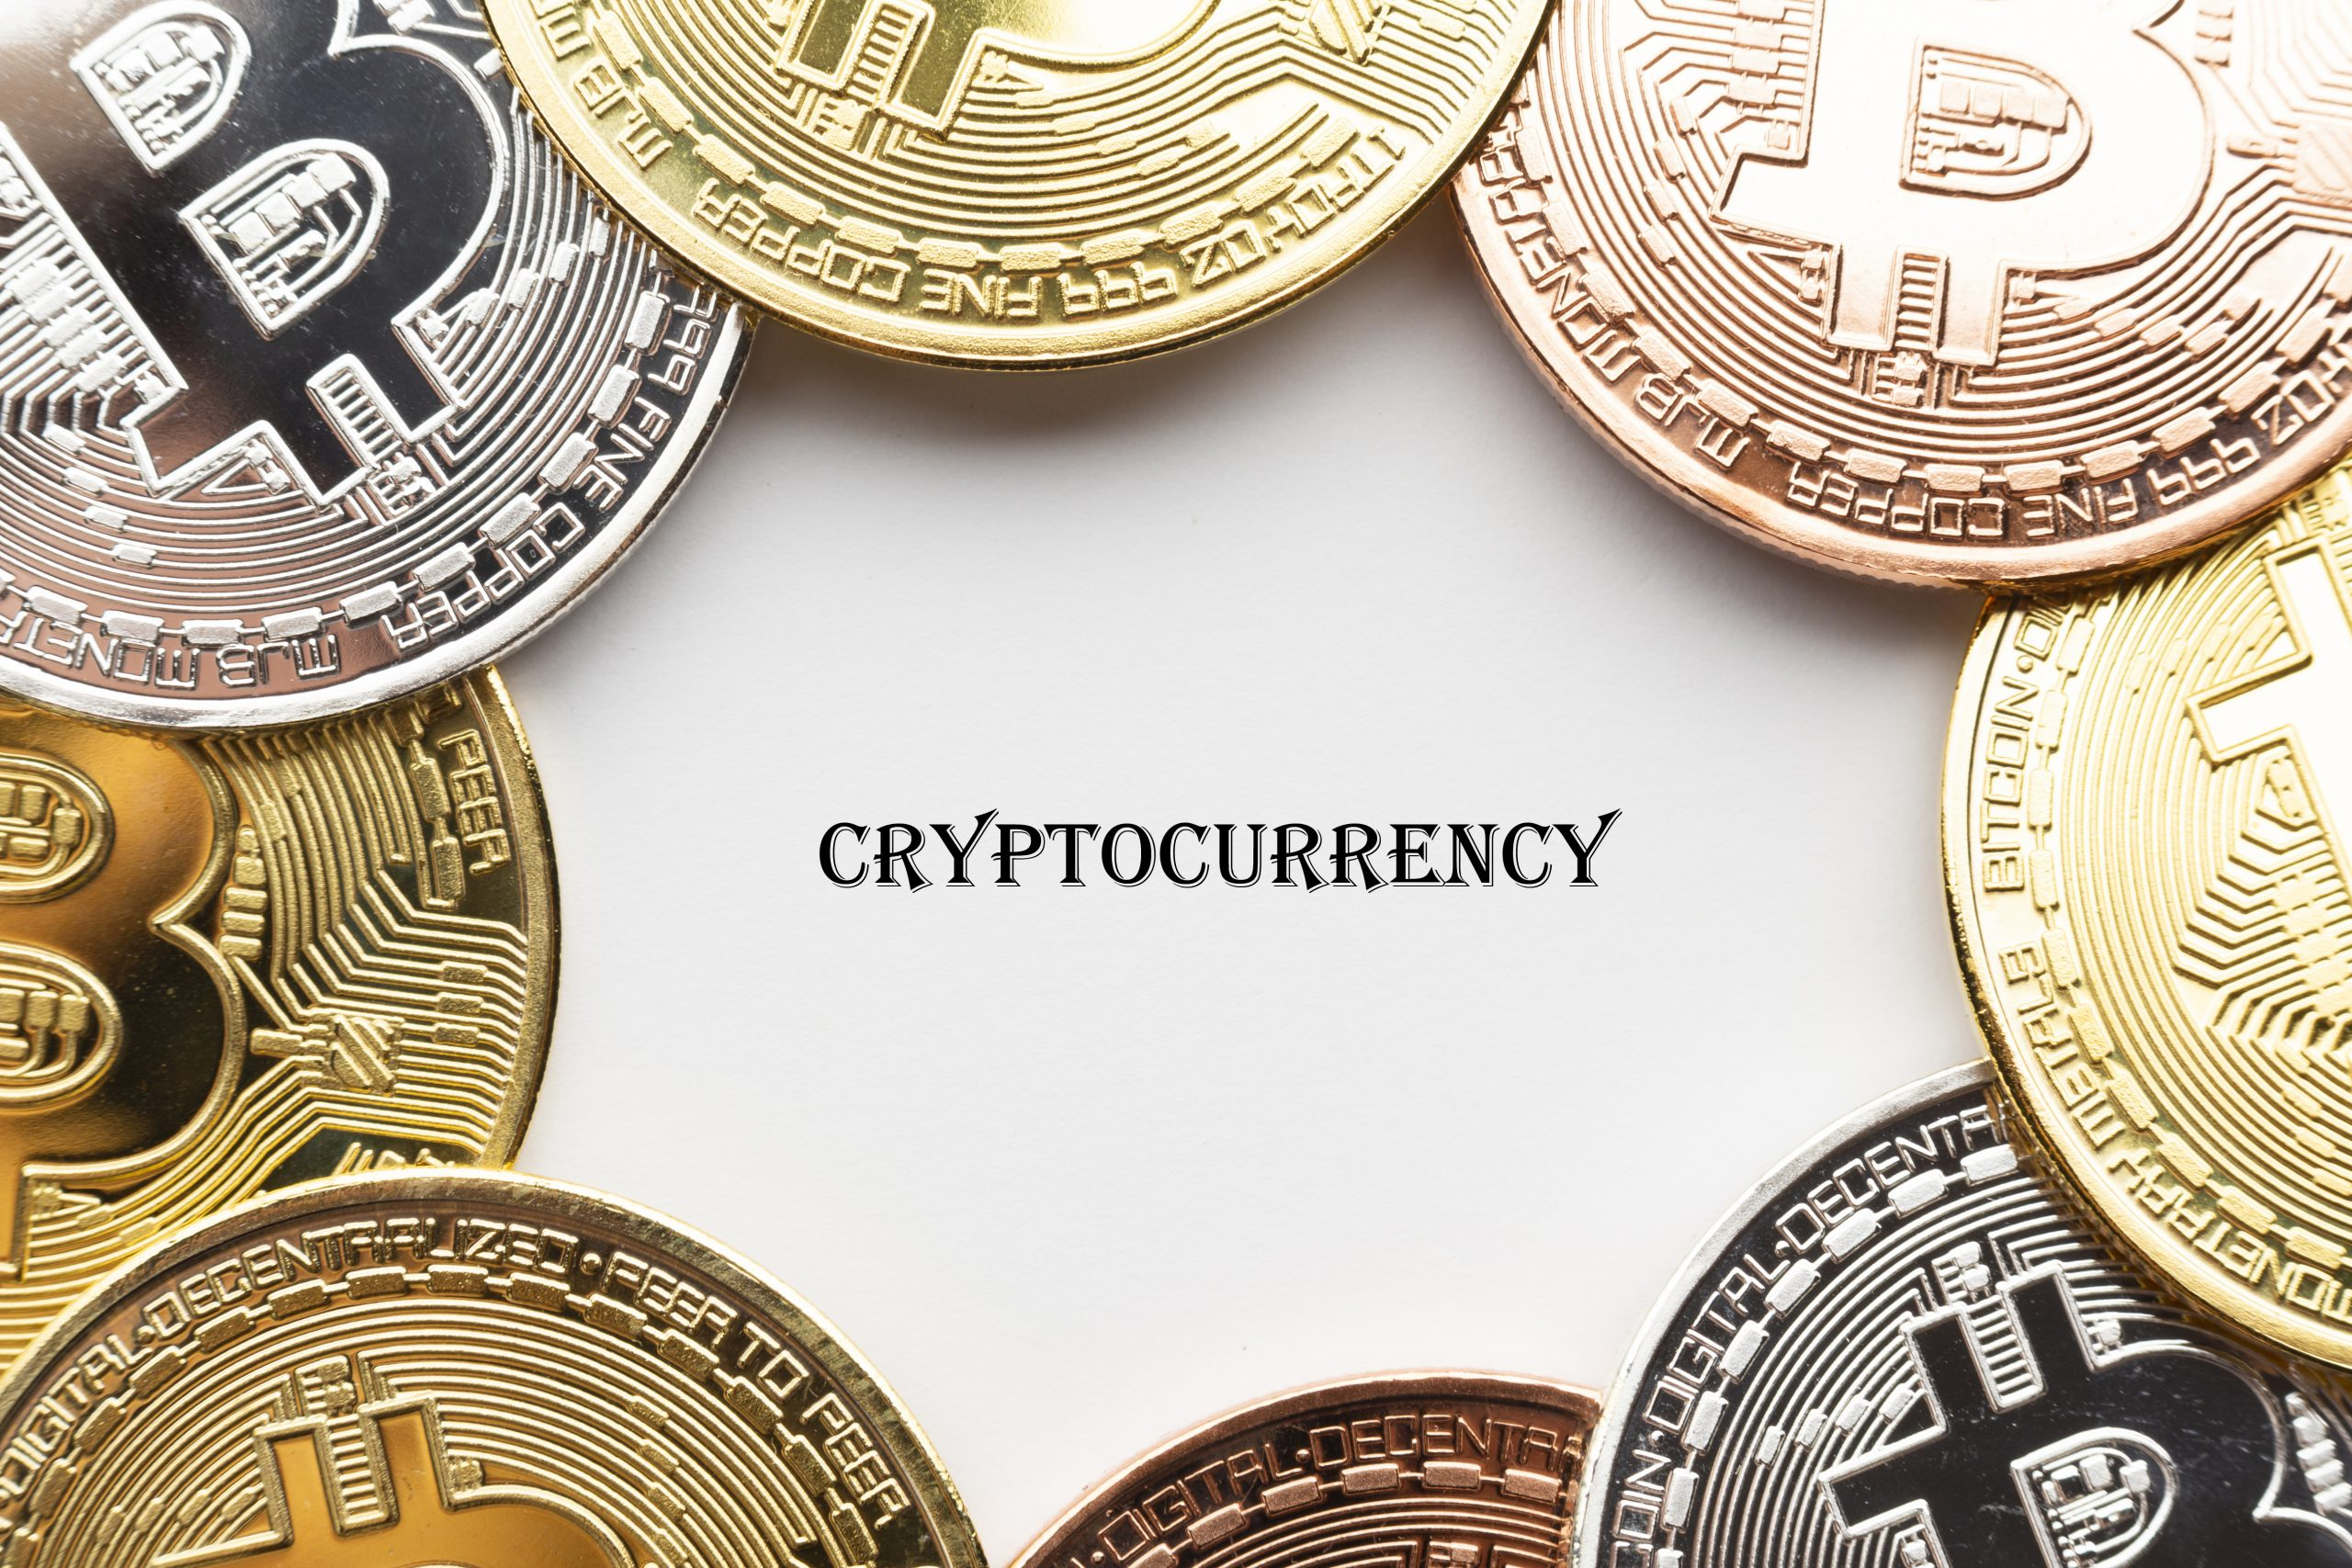 Cryptocurrency in use